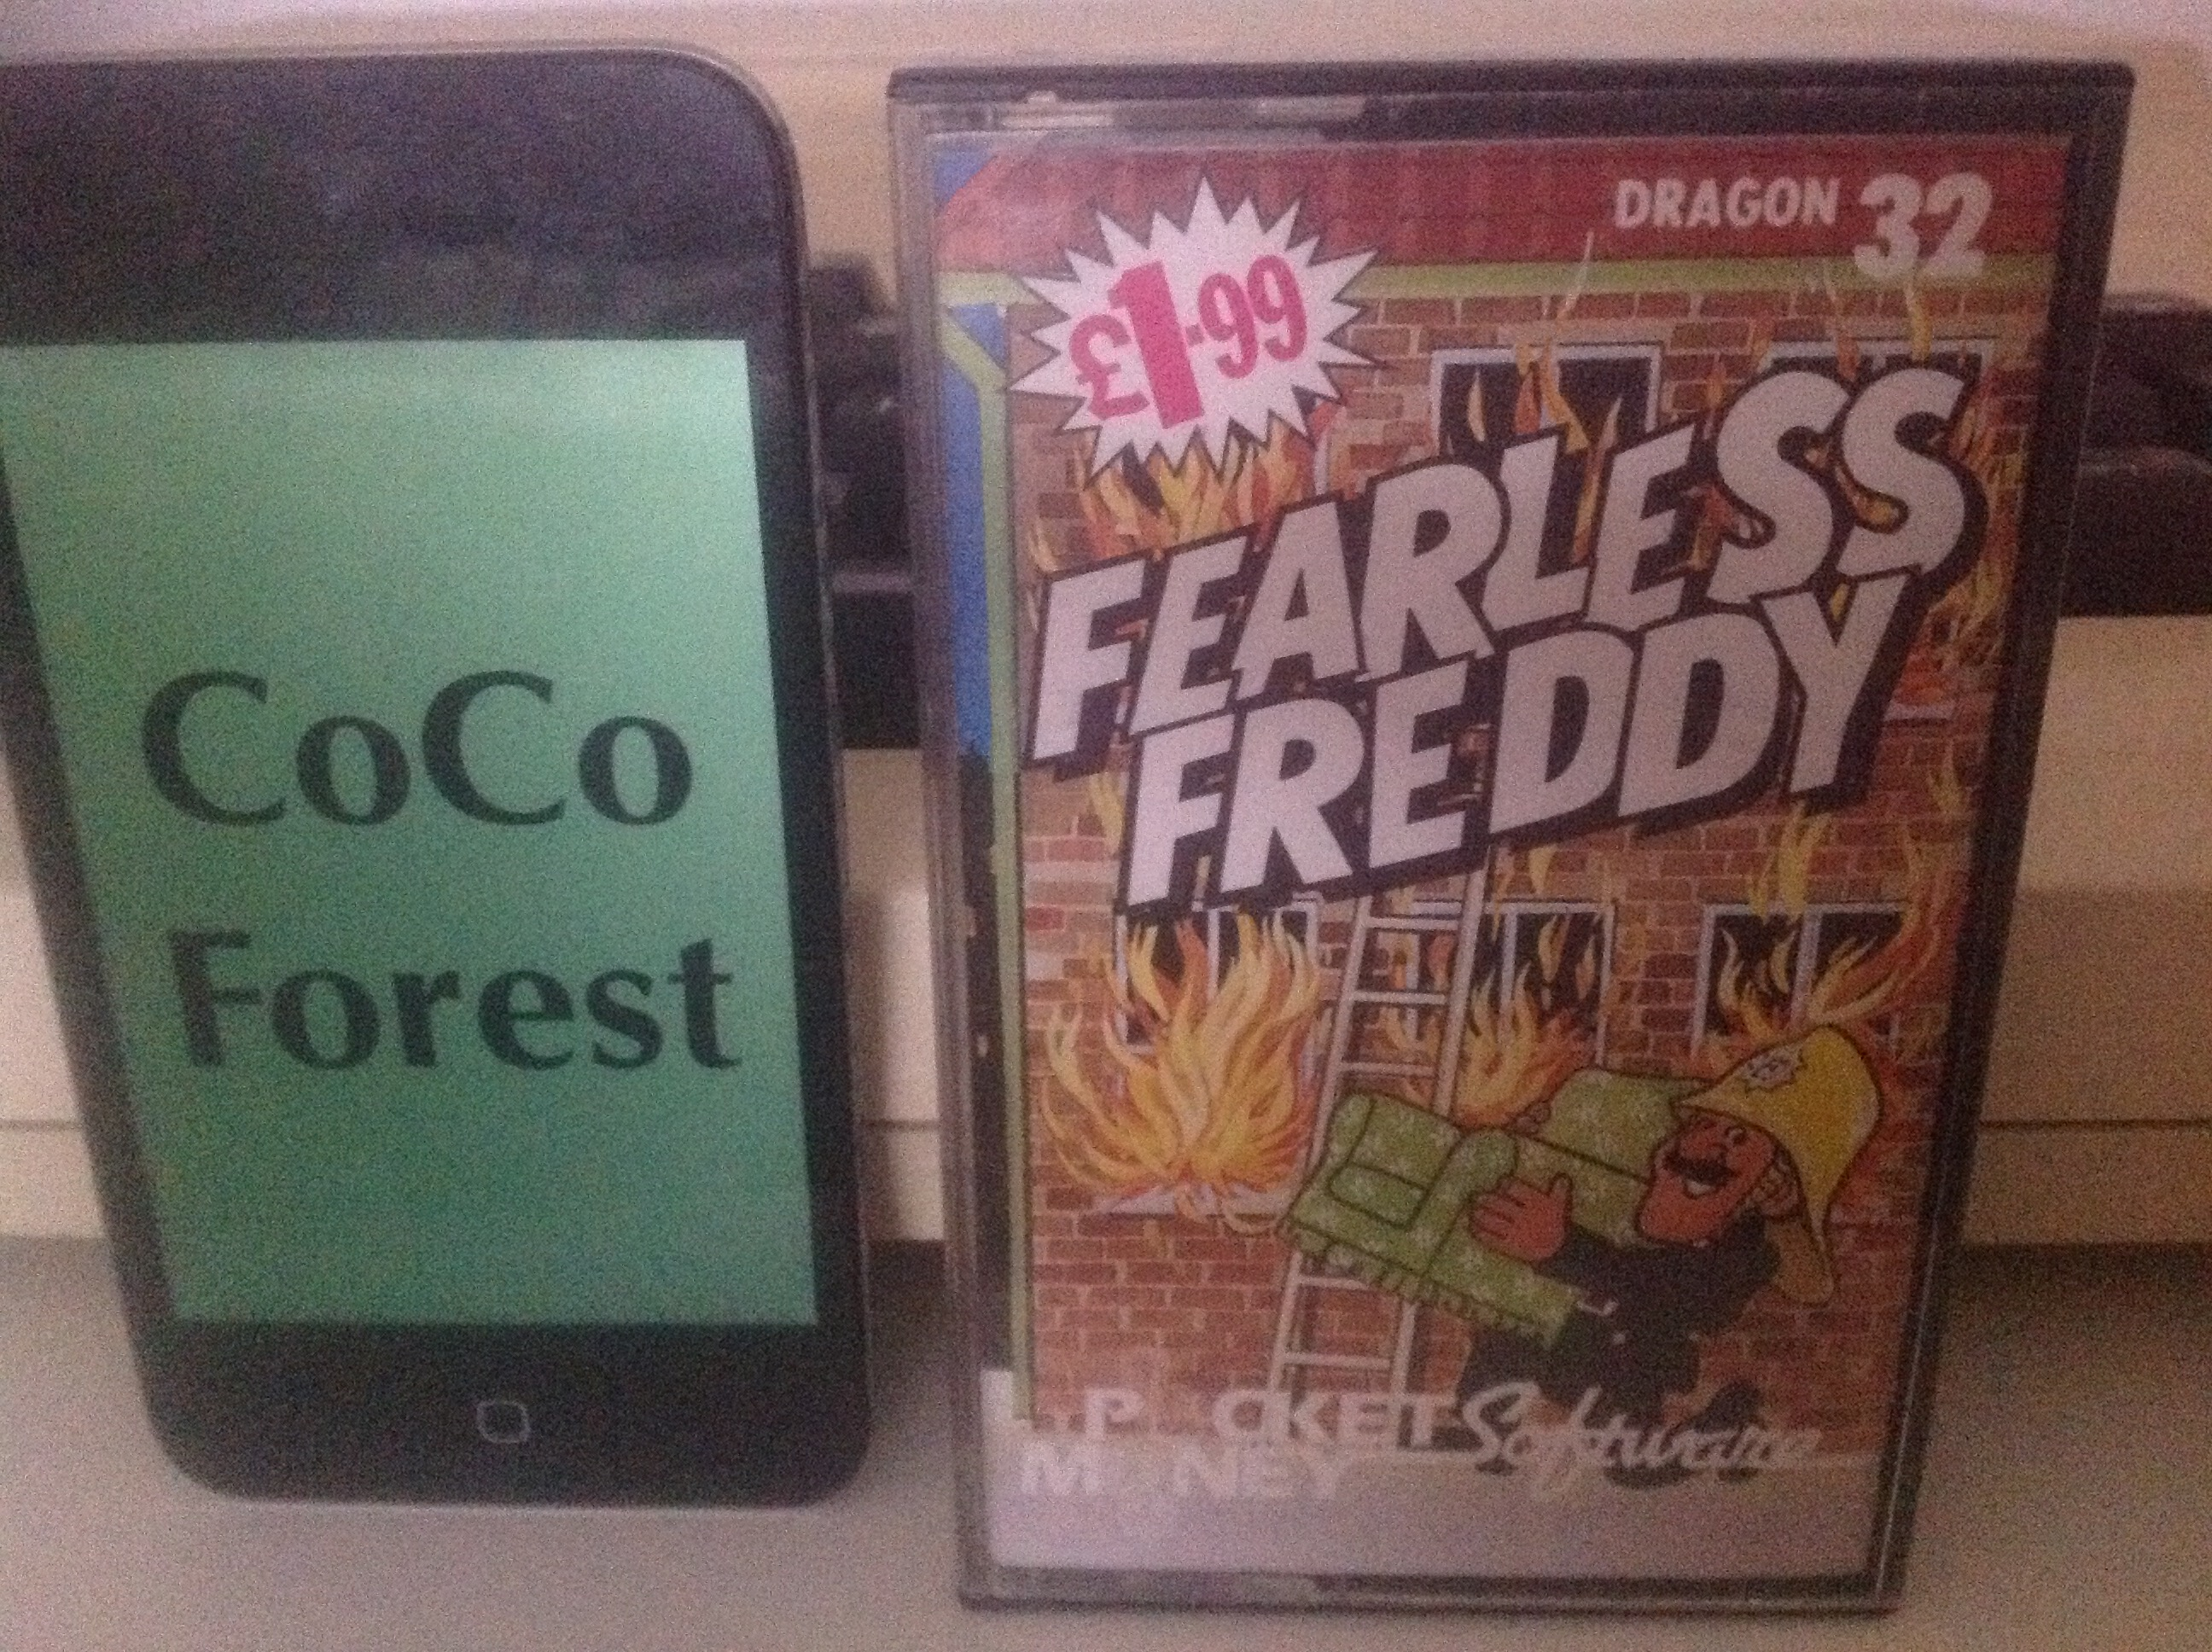 CoCoForest: Fearless Freddy (Dragon 32/64) 29,170 points on 2018-01-13 08:21:22